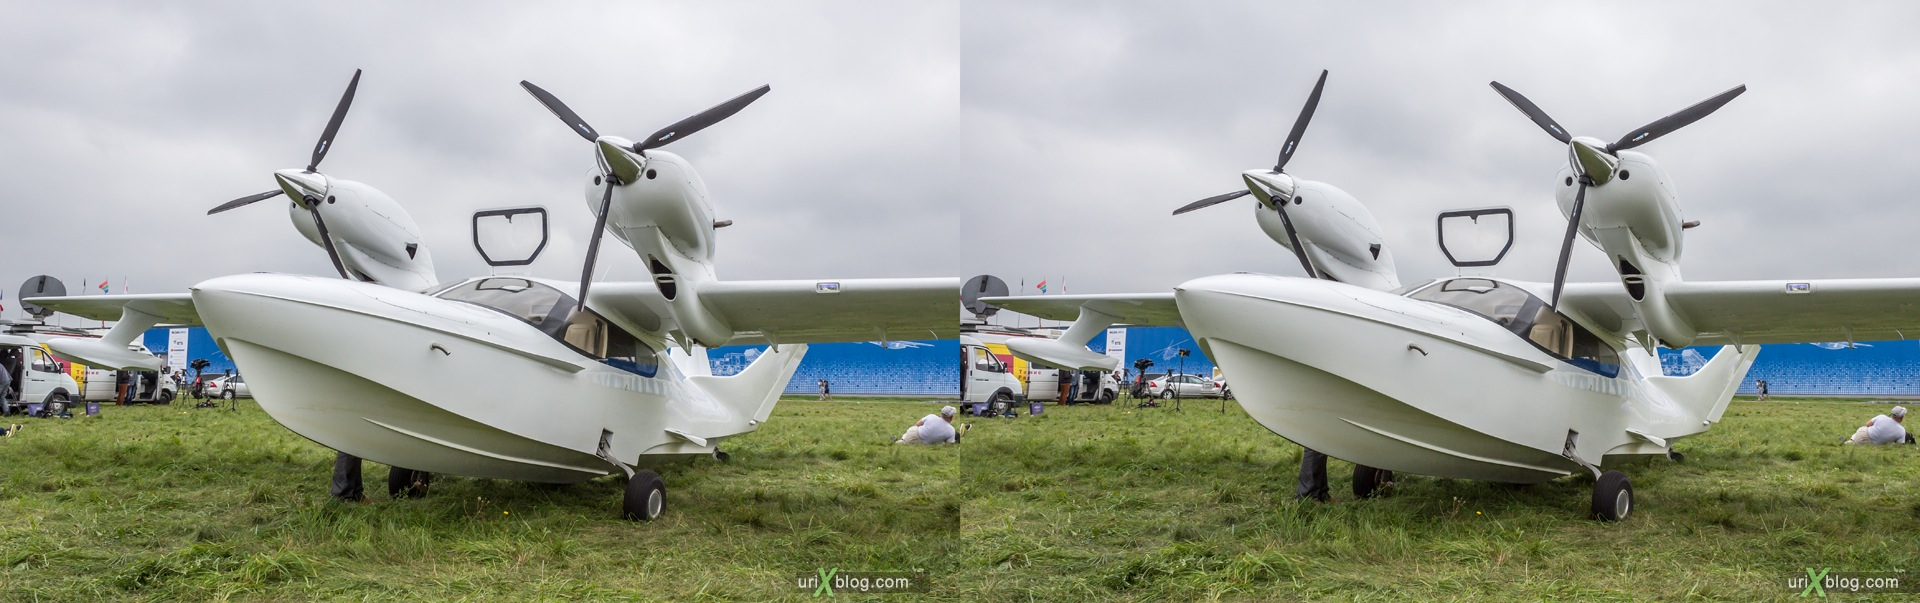 2013, L-42M 006, MAKS, International Aviation and Space Salon, Russia, Ramenskoye airfield, airplane, 3D, stereo pair, cross-eyed, crossview, cross view stereo pair, stereoscopic